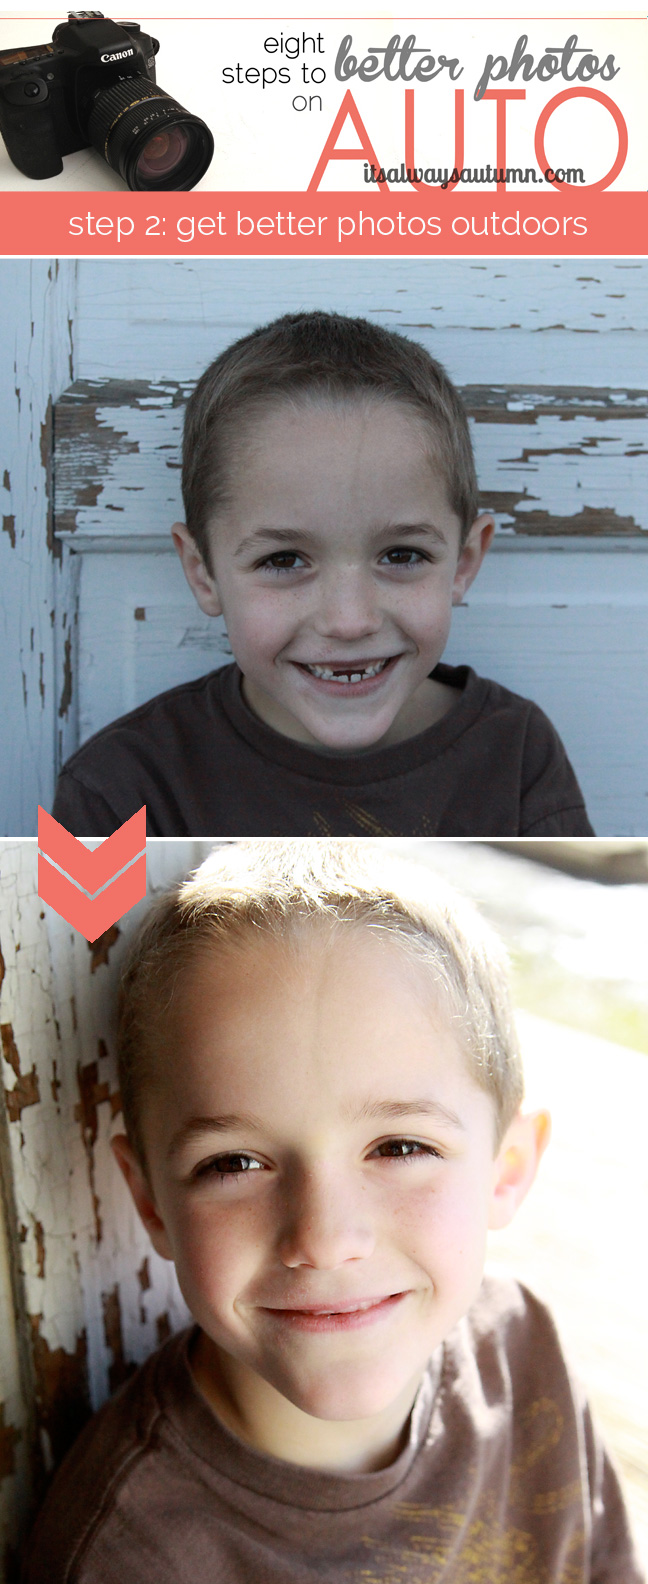 A photo of a young boy taken outside with flat blue light, then a photo of same boy with pleasant golden side lighting